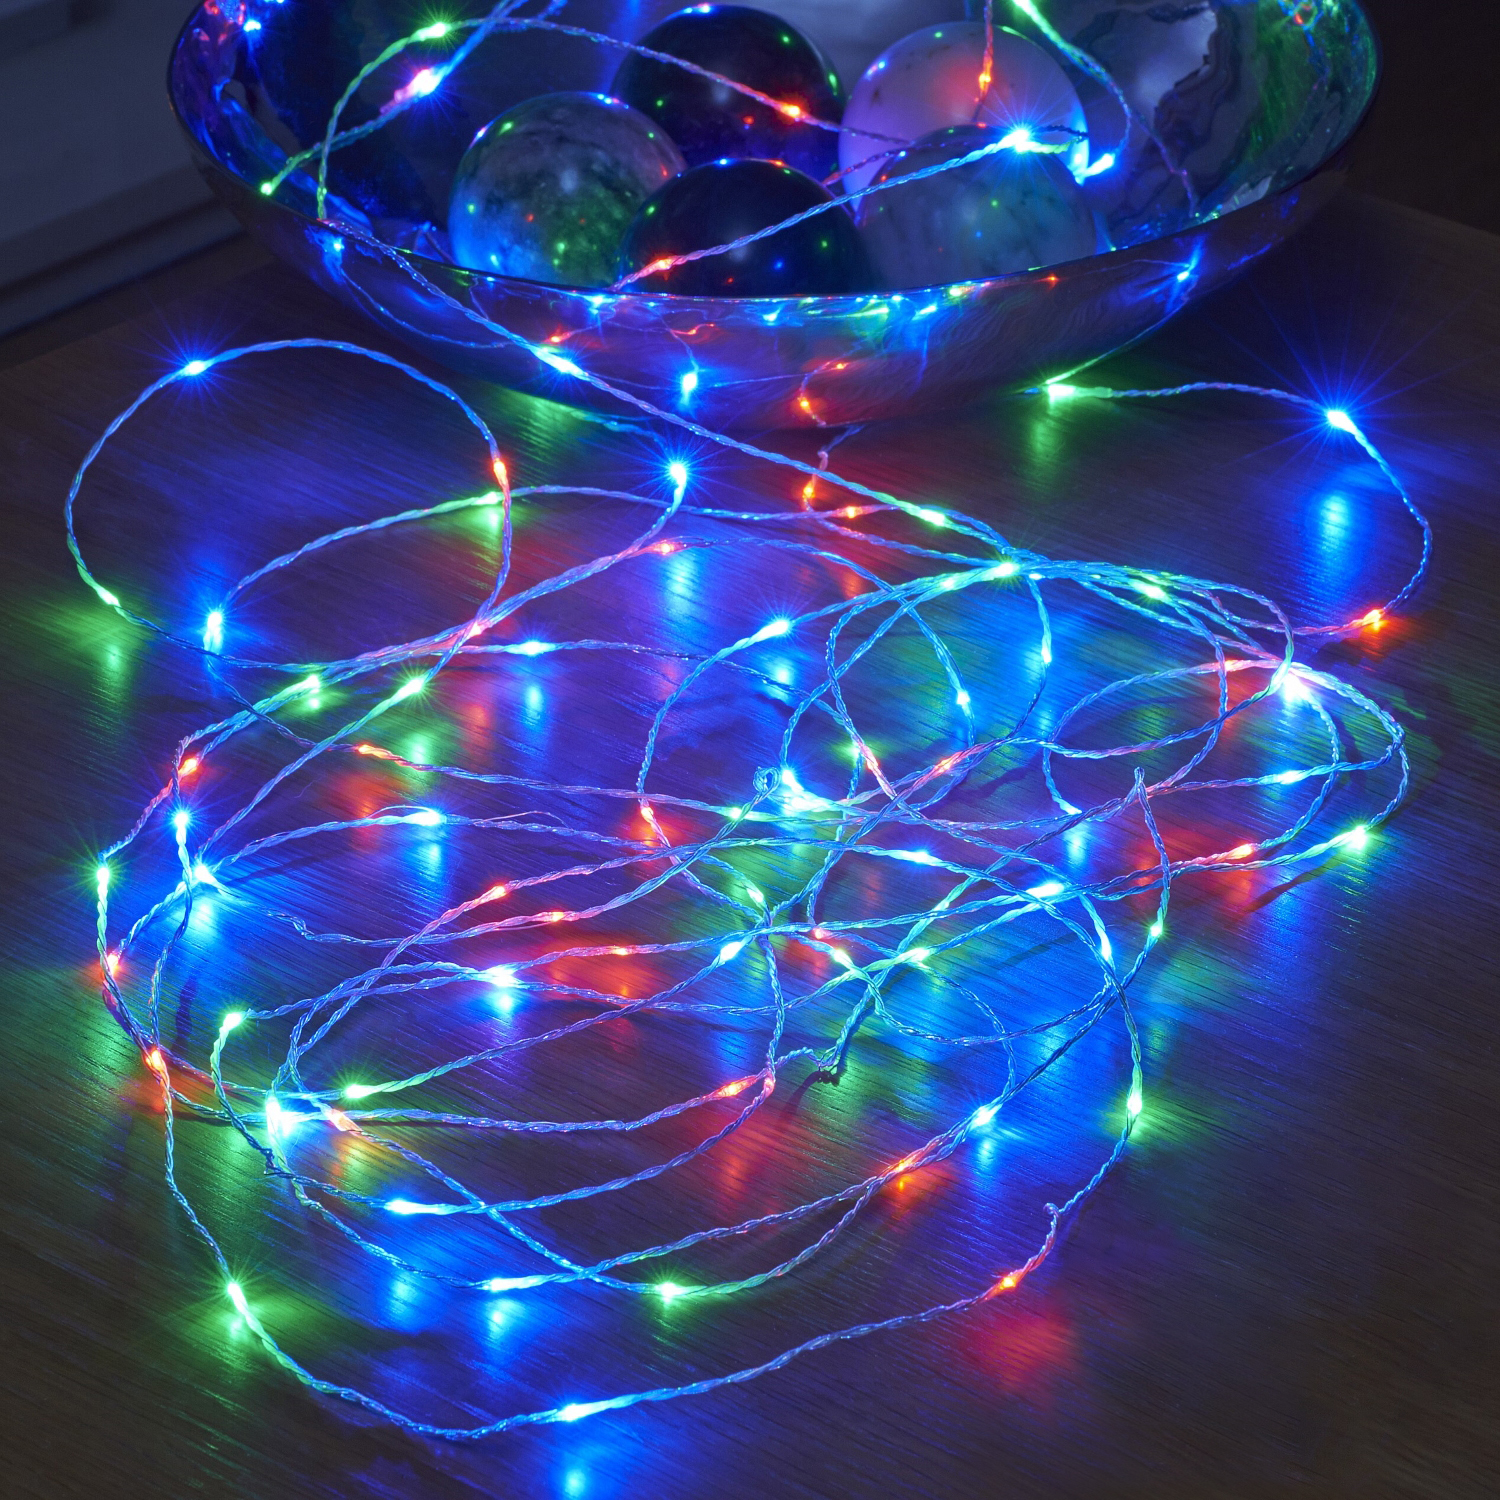 Led String Lights With Battery : Micro LED String Lights - Battery Operated - Remote Controlled - Outdoor - RGB - 5M - Auraglow ...